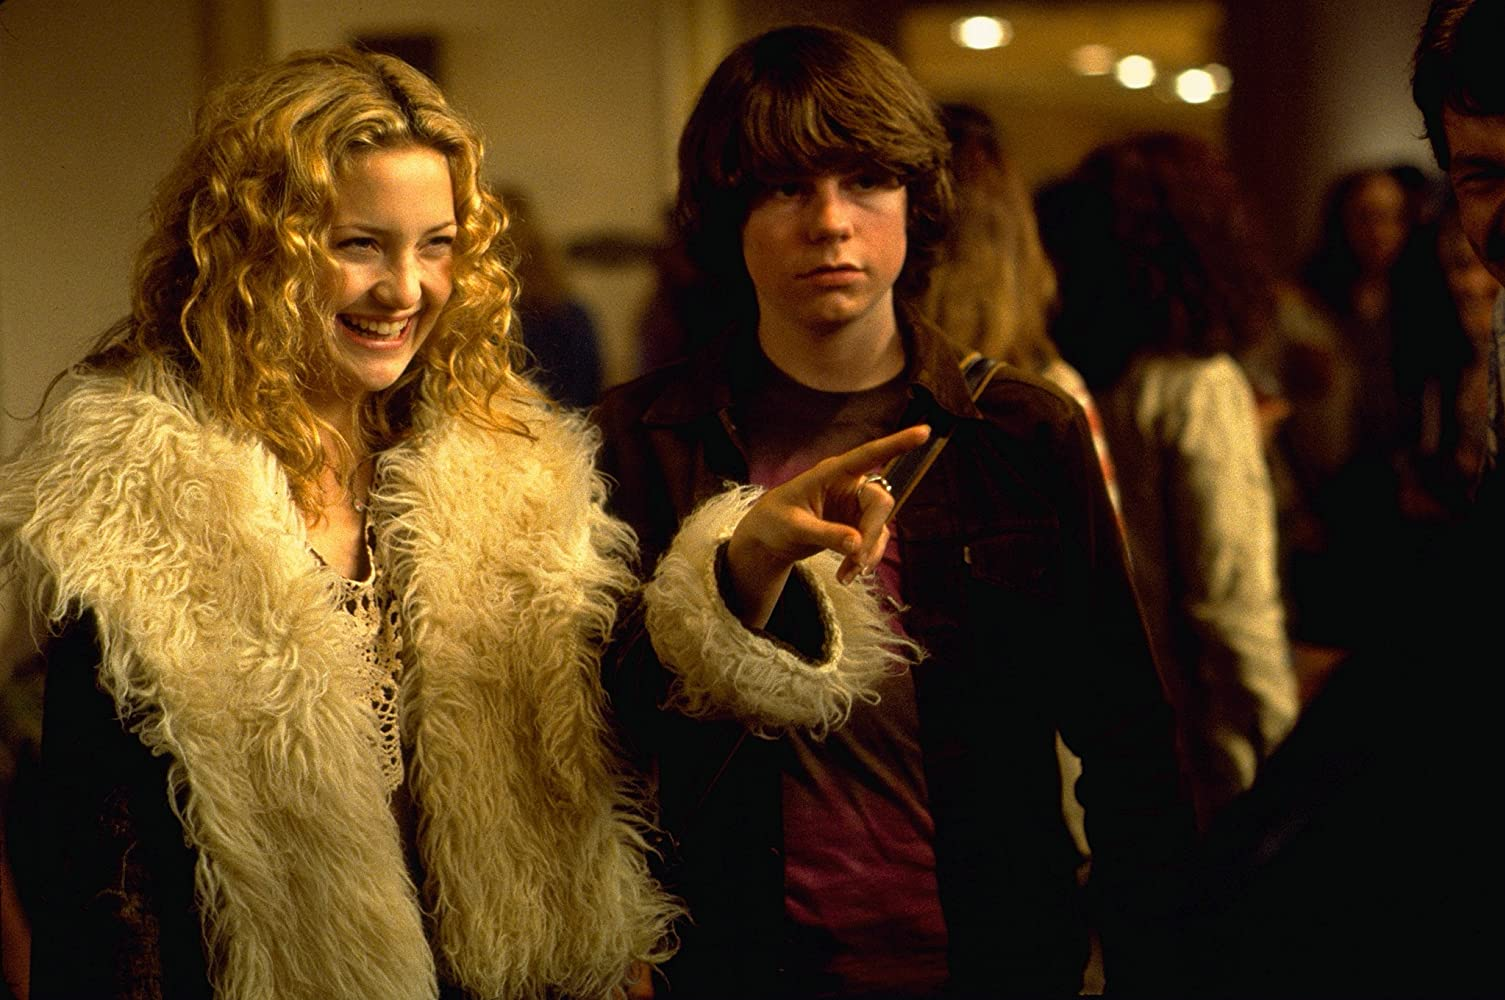 Kate Hudson and Patrick Fugit in Almost Famous (2000)